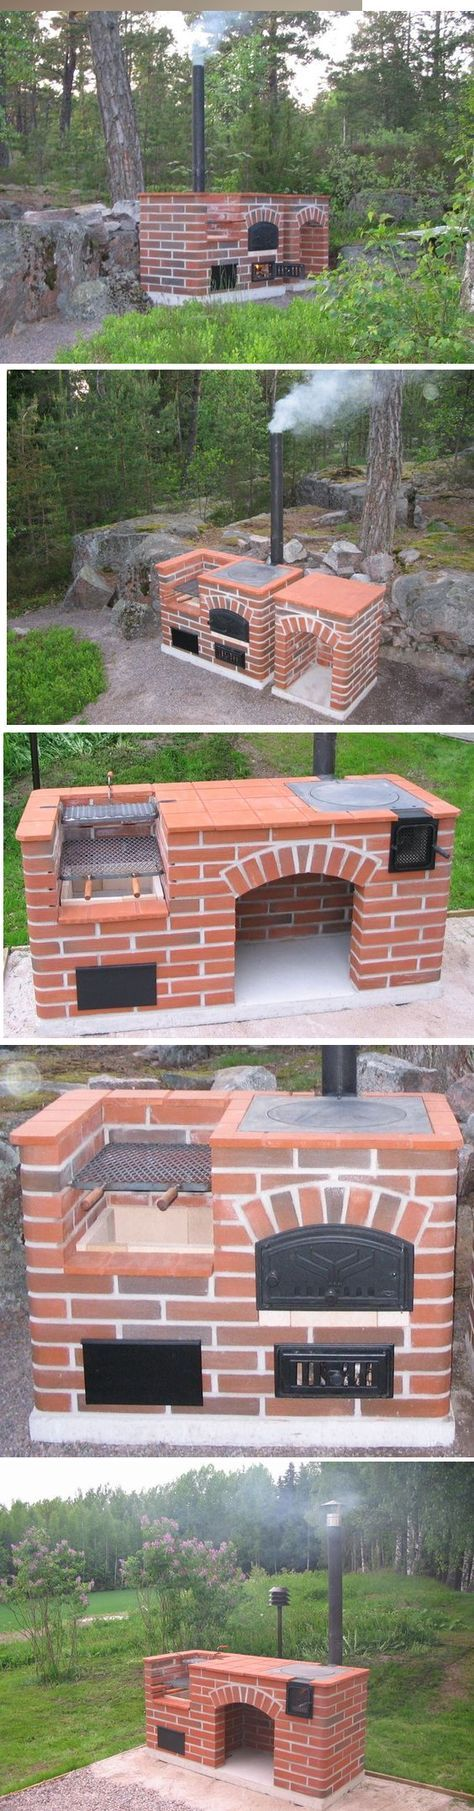 how to build your own diy outdoor wood stove oven cooker grill